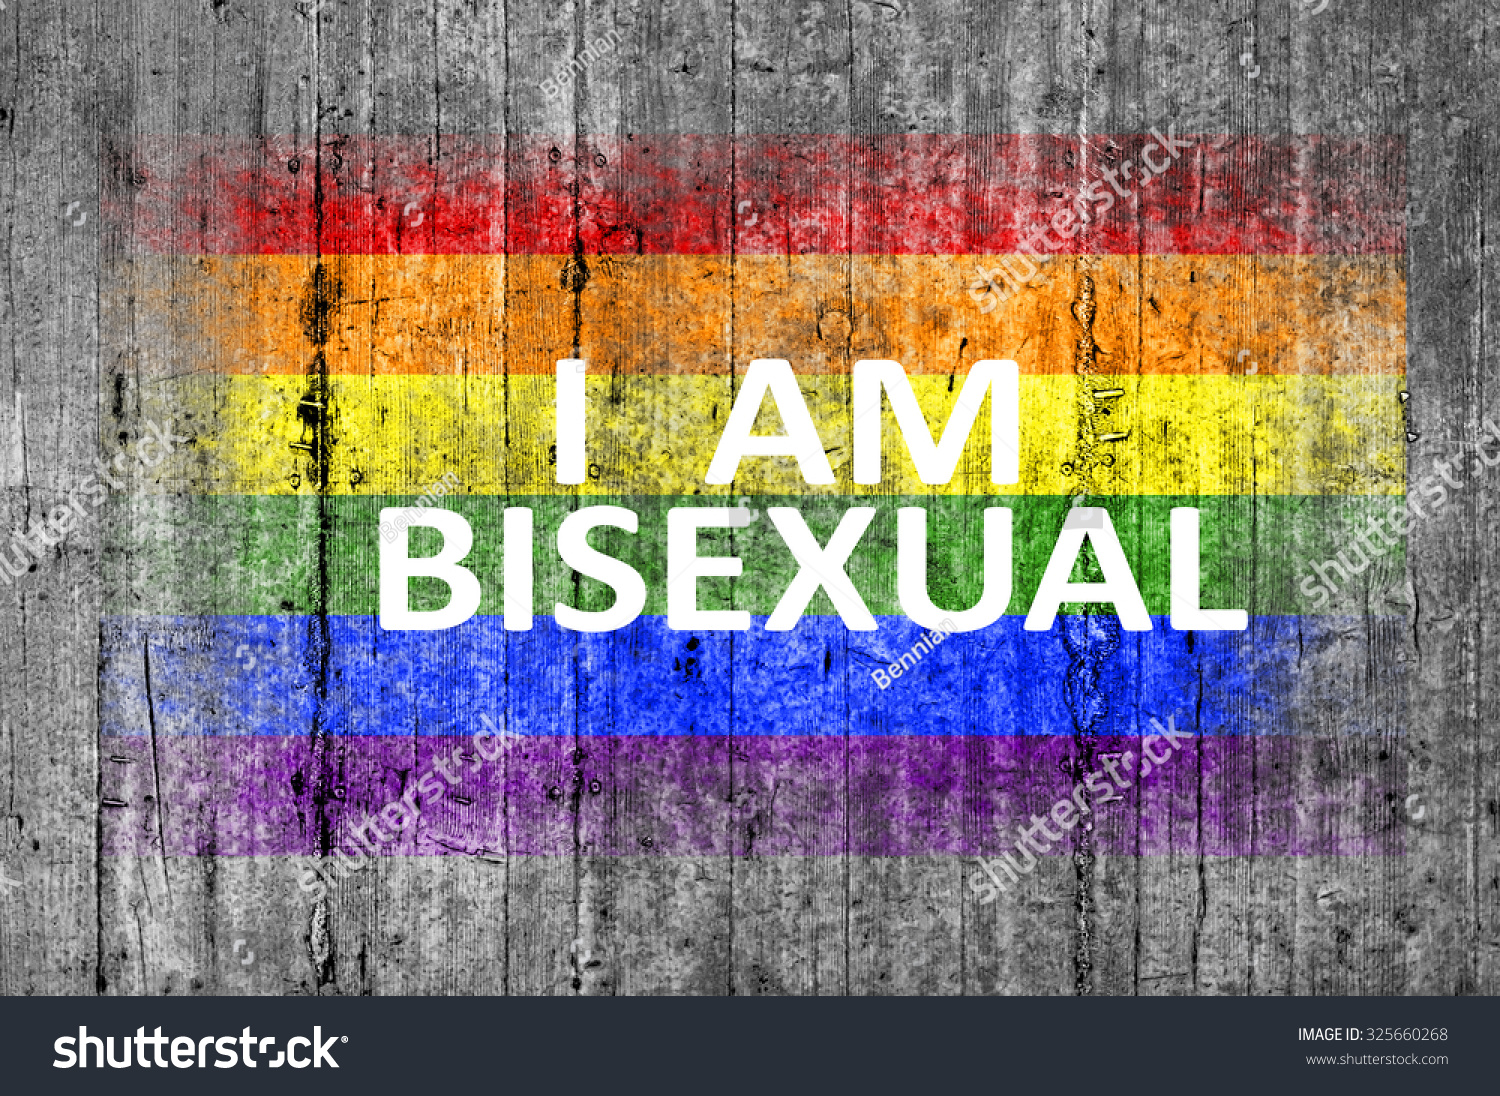 stock-photo-i-am-bisexual-and-lgbt-flag-painted-on-background-texture-gray-concrete-325660268